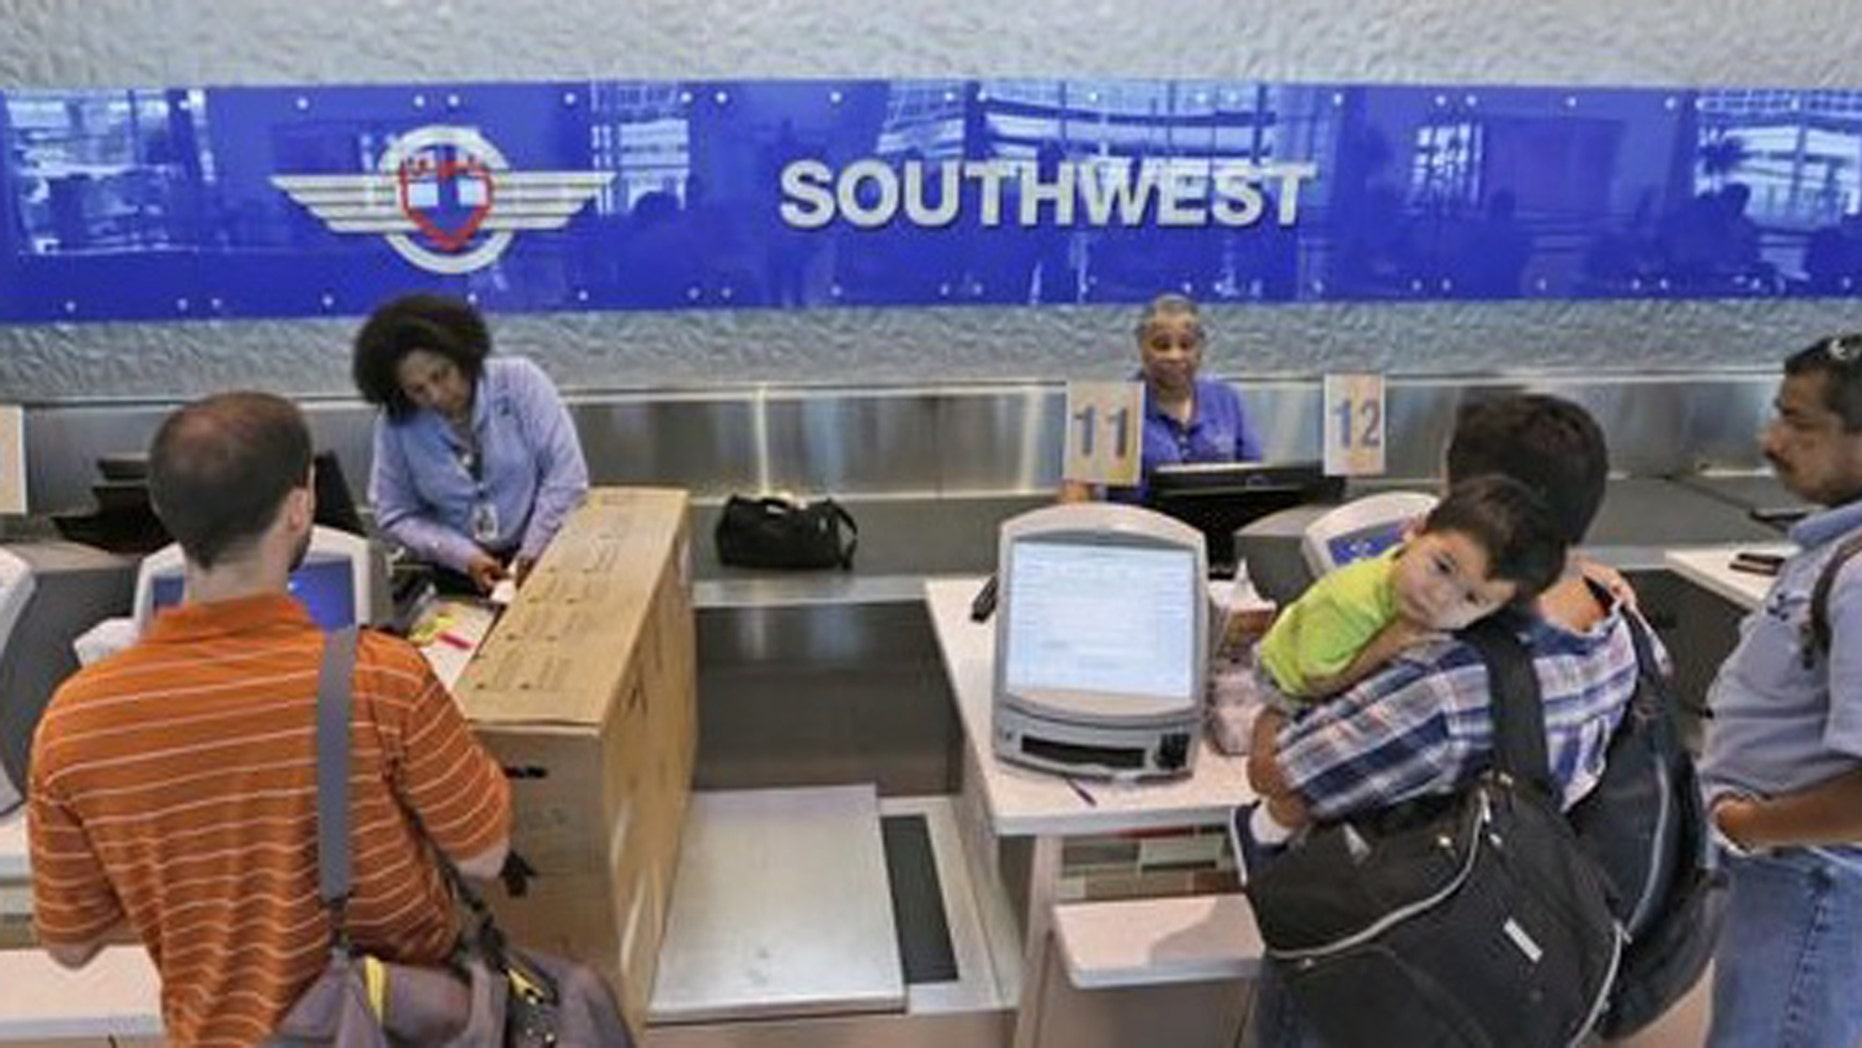 Has Southwest lost one of your bags?